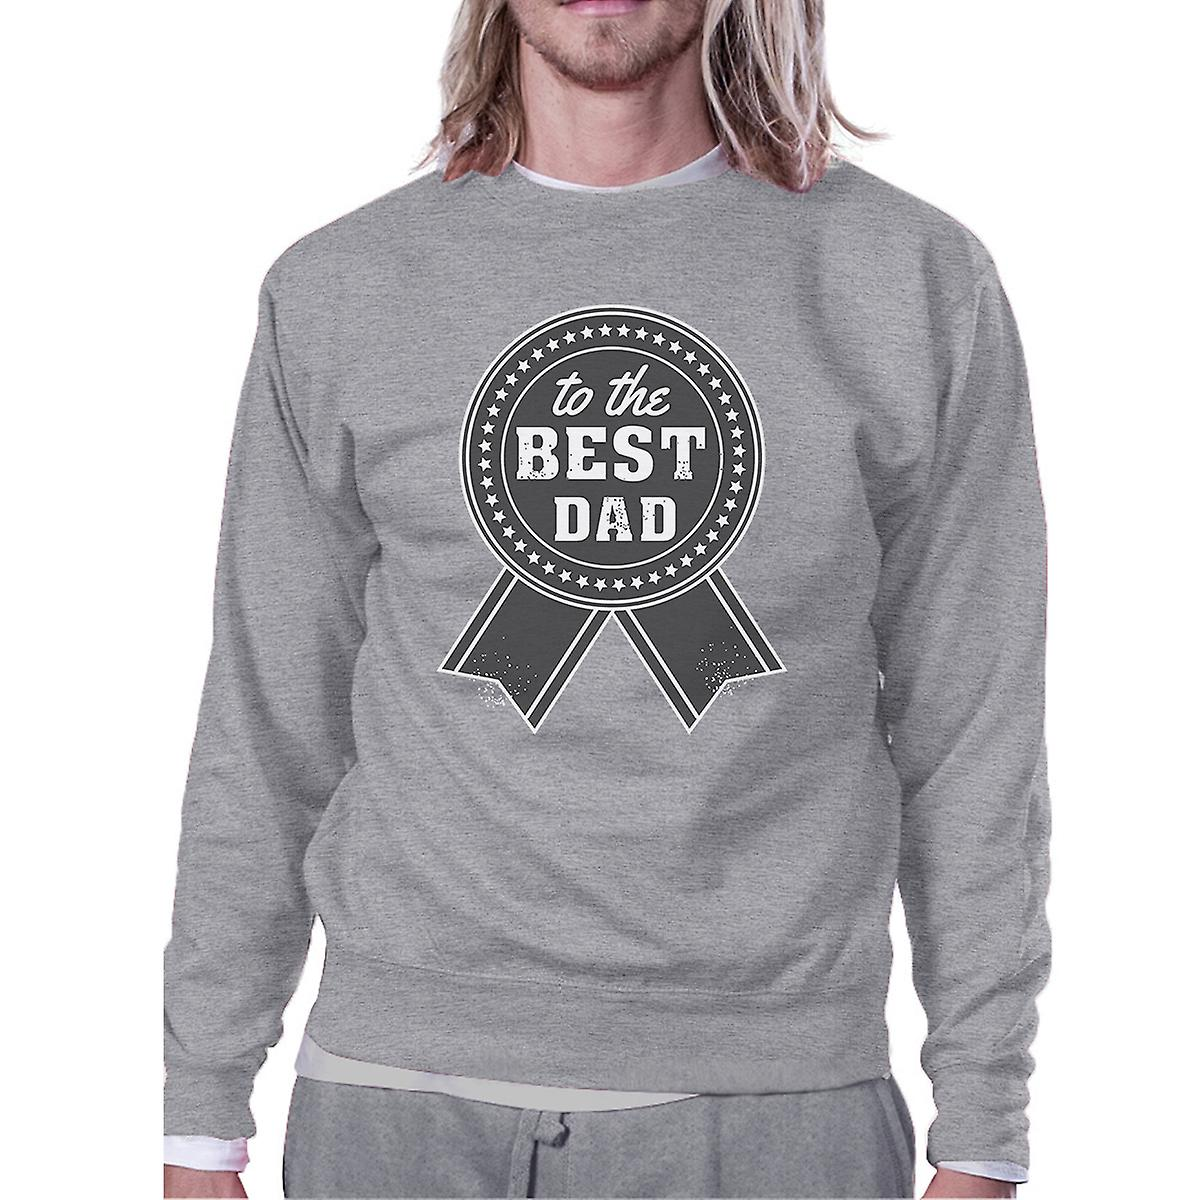 To The Best Dad Grey Sweatshirt For Men Perfect Birthday Gifts